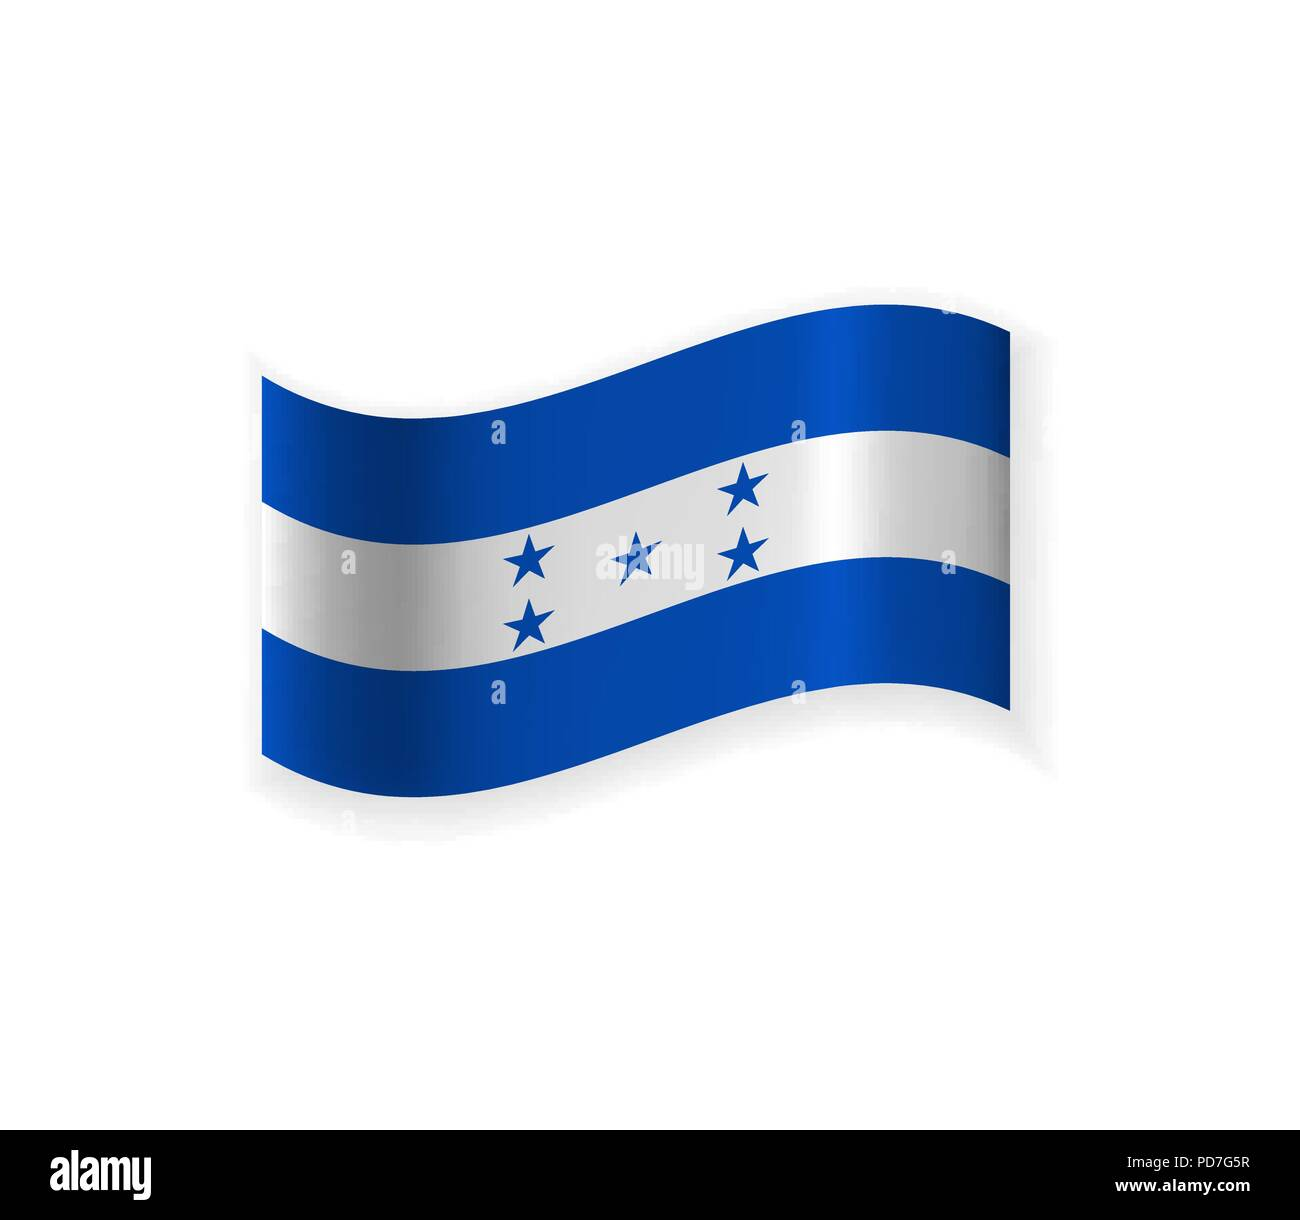 The Flag Of Honduras. Country in Central America. Vector illustration. National symbol Stock Vector